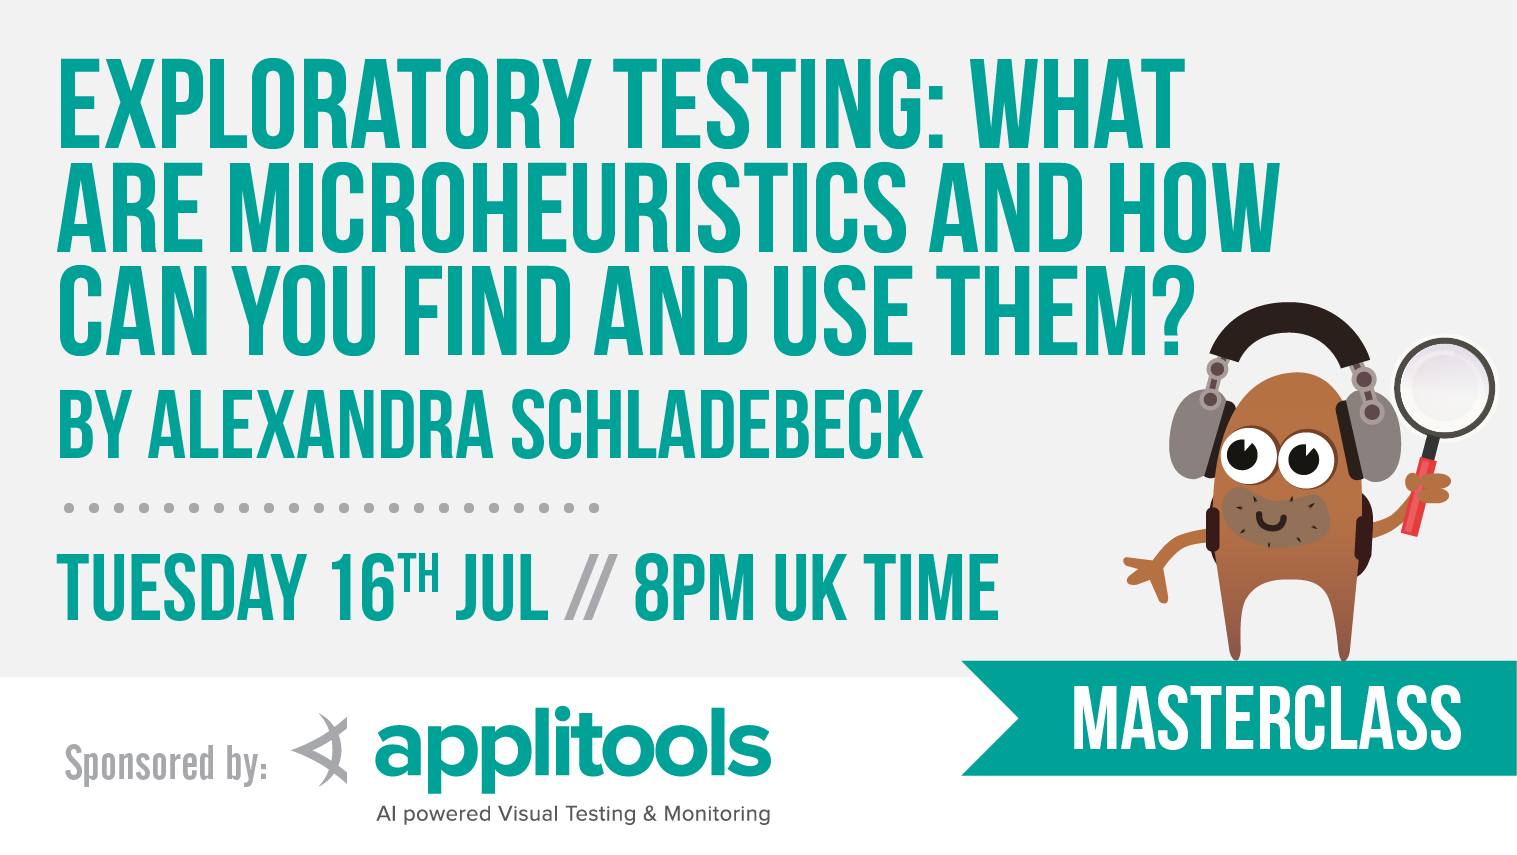 Masterclass: Exploratory Testing: What are microheuristics and how can you find and use them? with Alexandra Schladebeck, starts: 2019-07-16